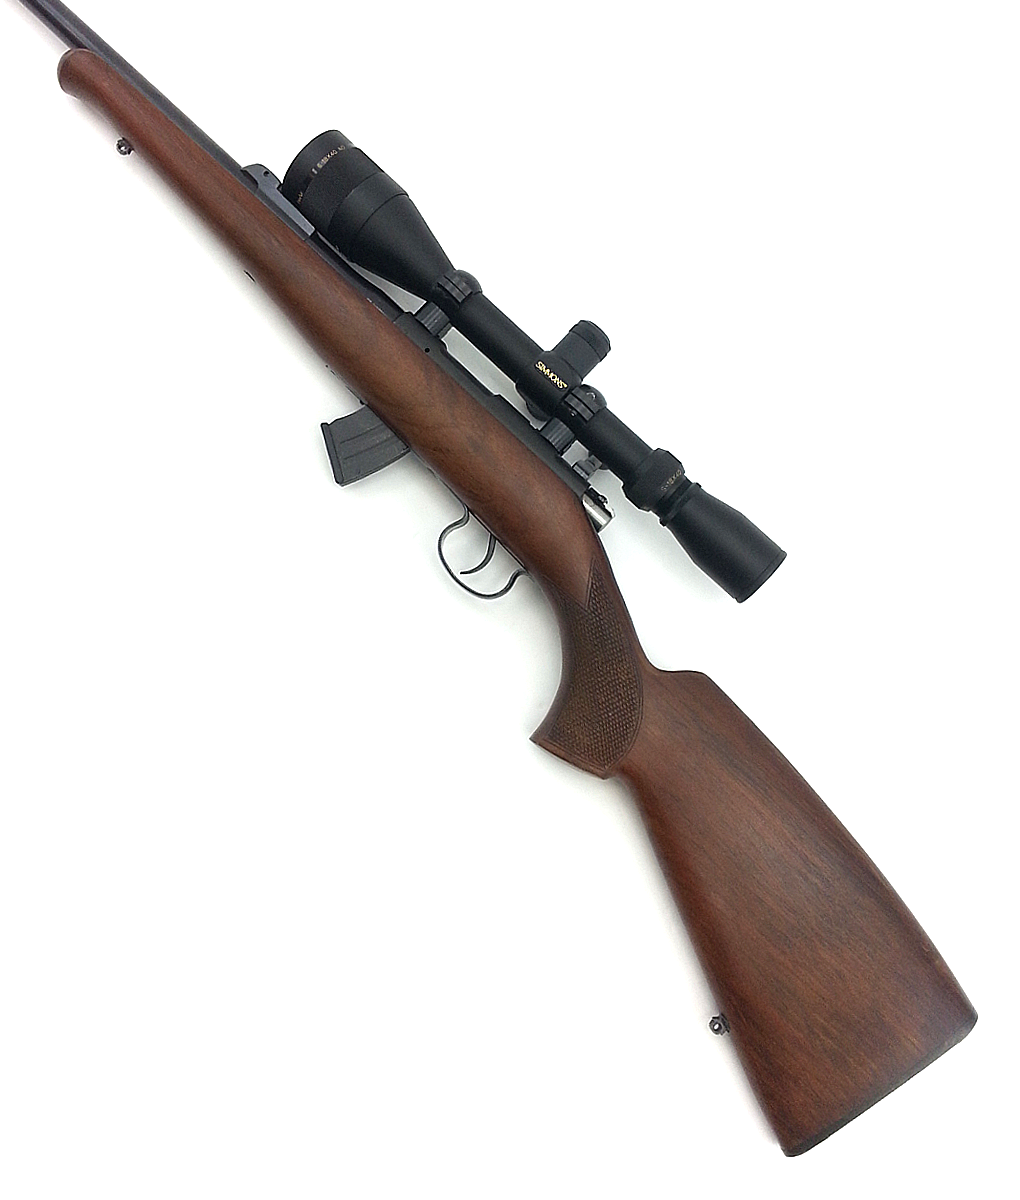 Cz rifle deals